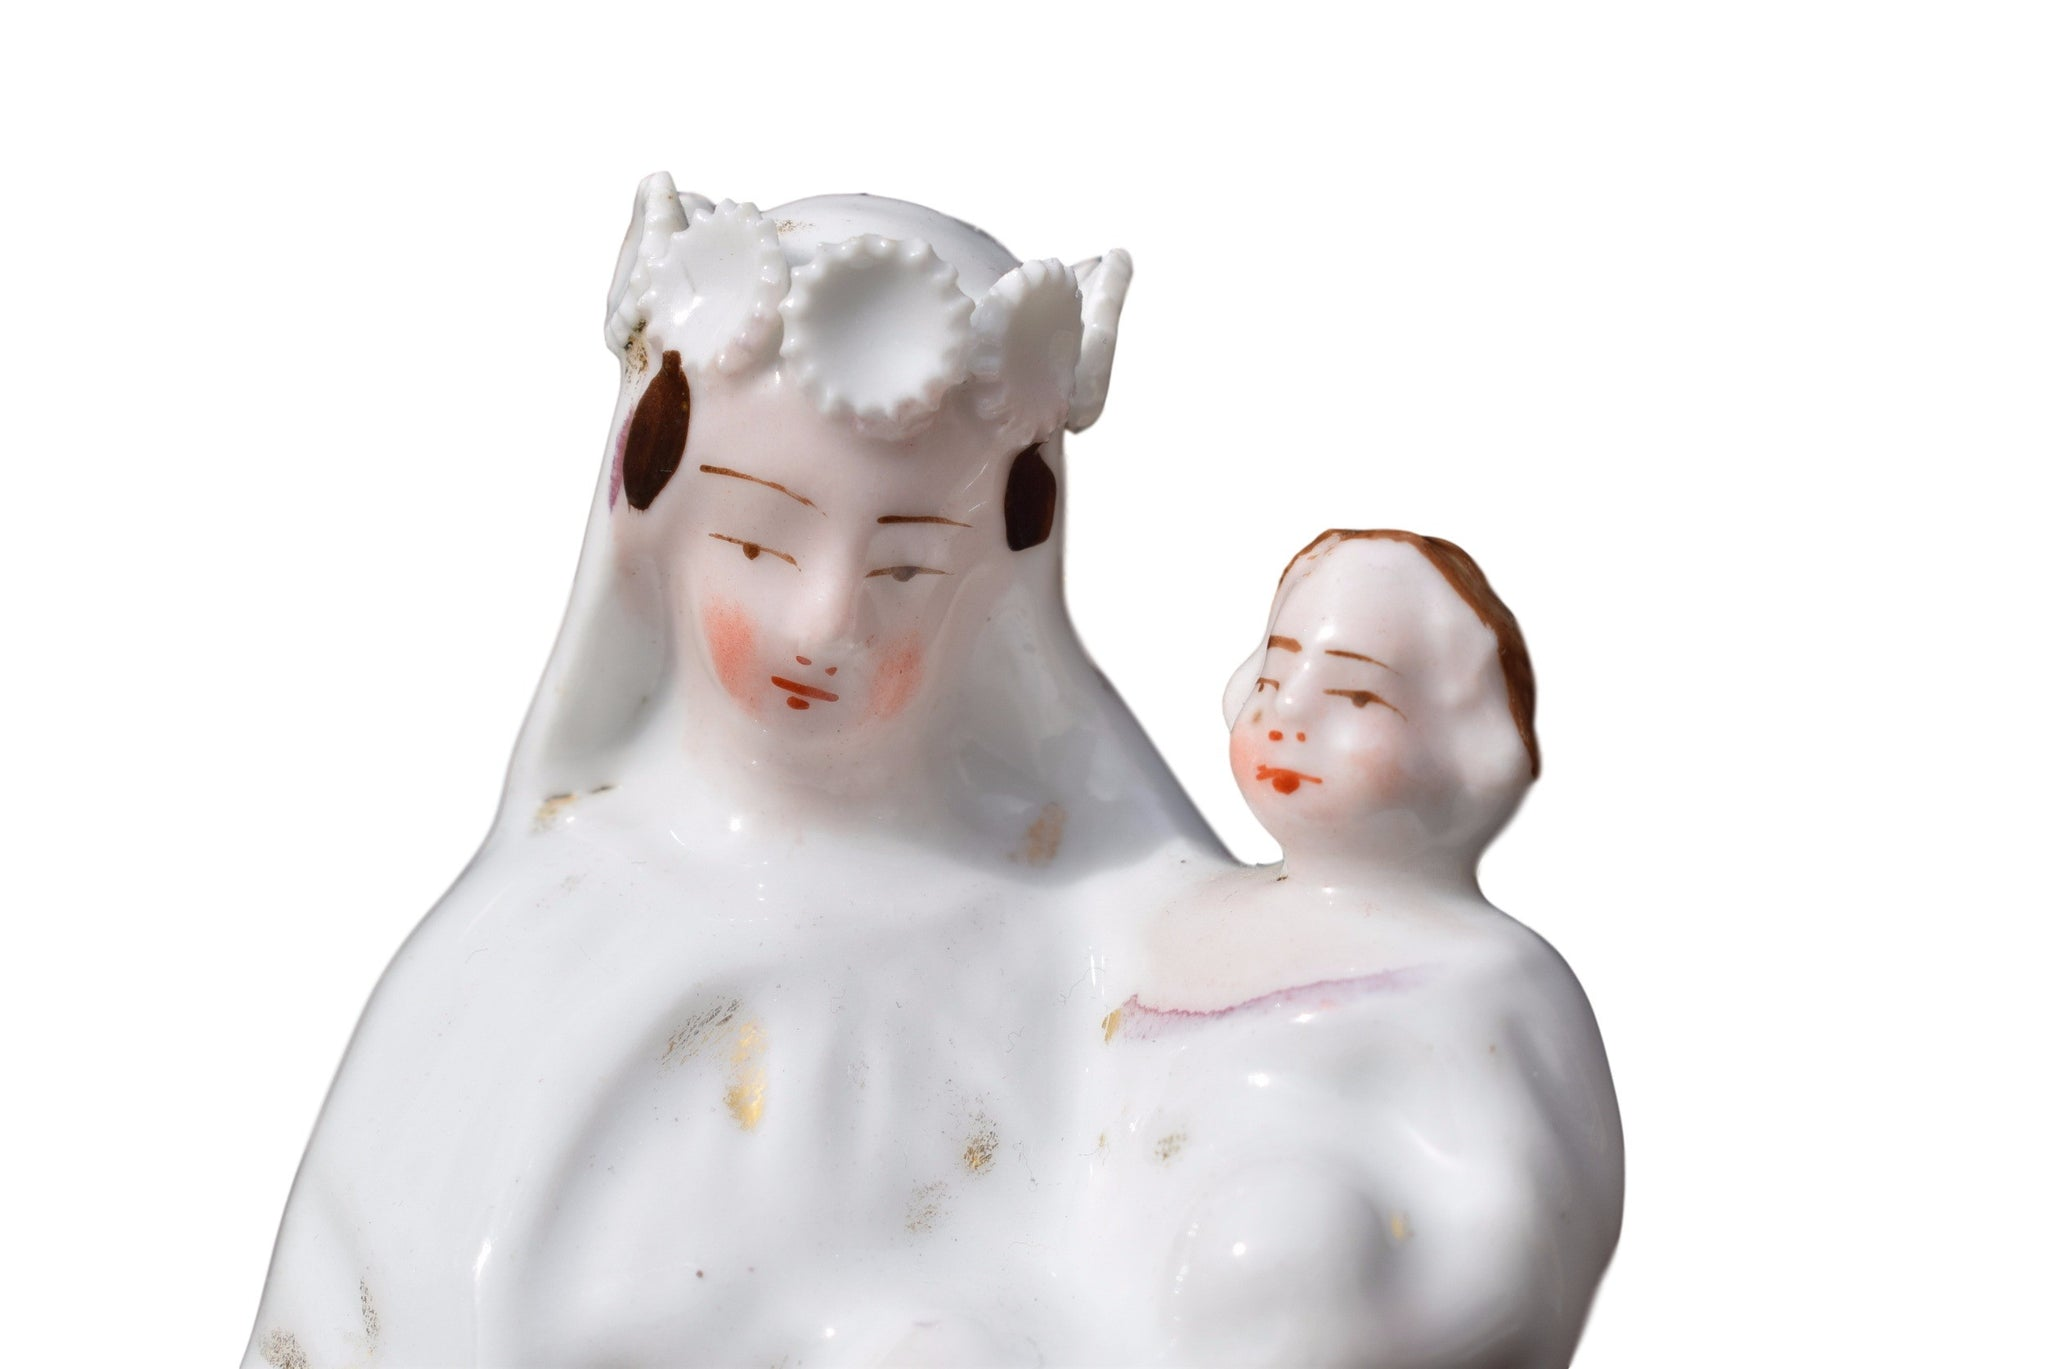 French Antique Paris Porcelain Virgin Mary and Jesus Child Statue - Charmantiques